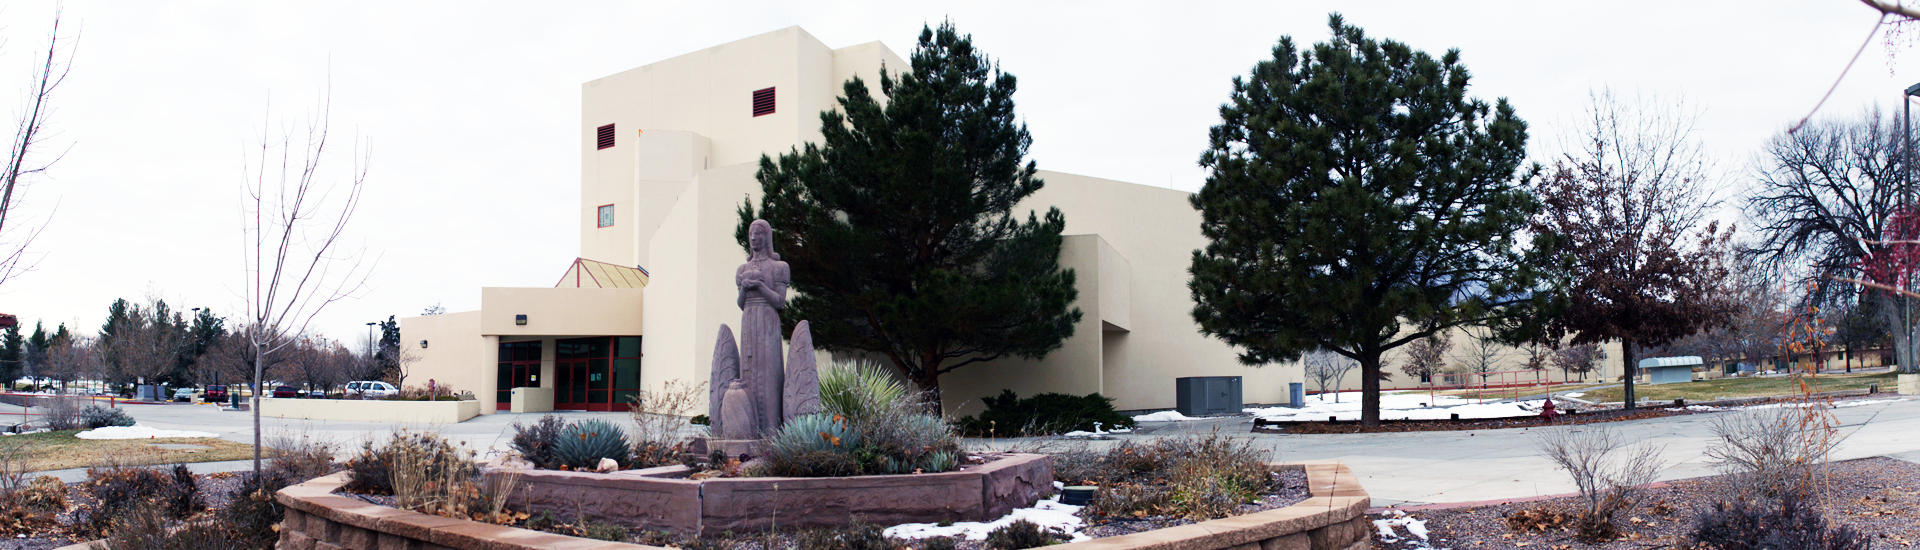 Workman Building at New Mexico Tech